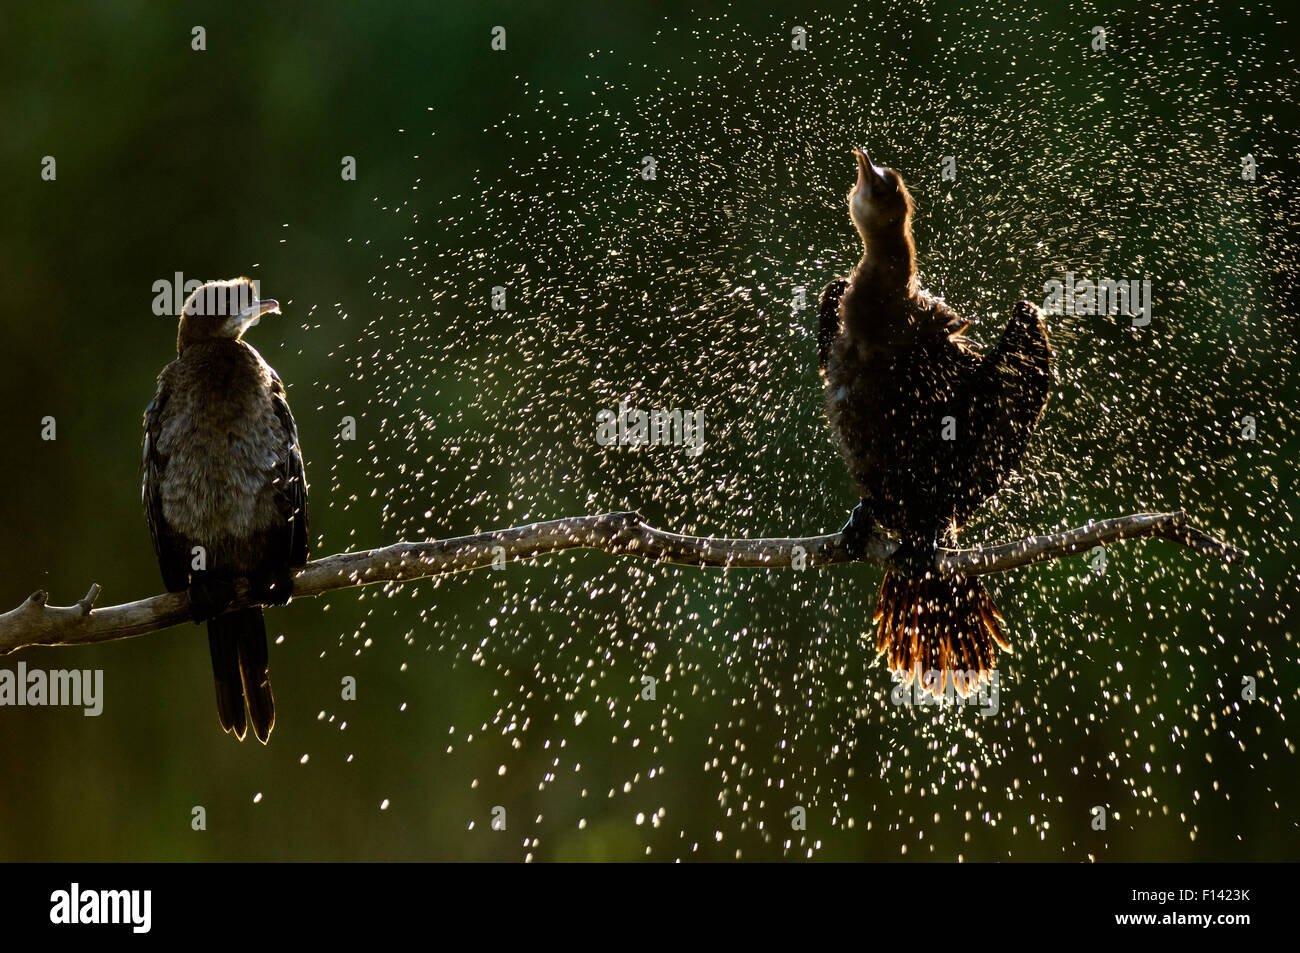 Pygmy cormorants (Phalacrocorax pygmaeus) drying their feathers, Hortobay, hungary, August. - Stock Image